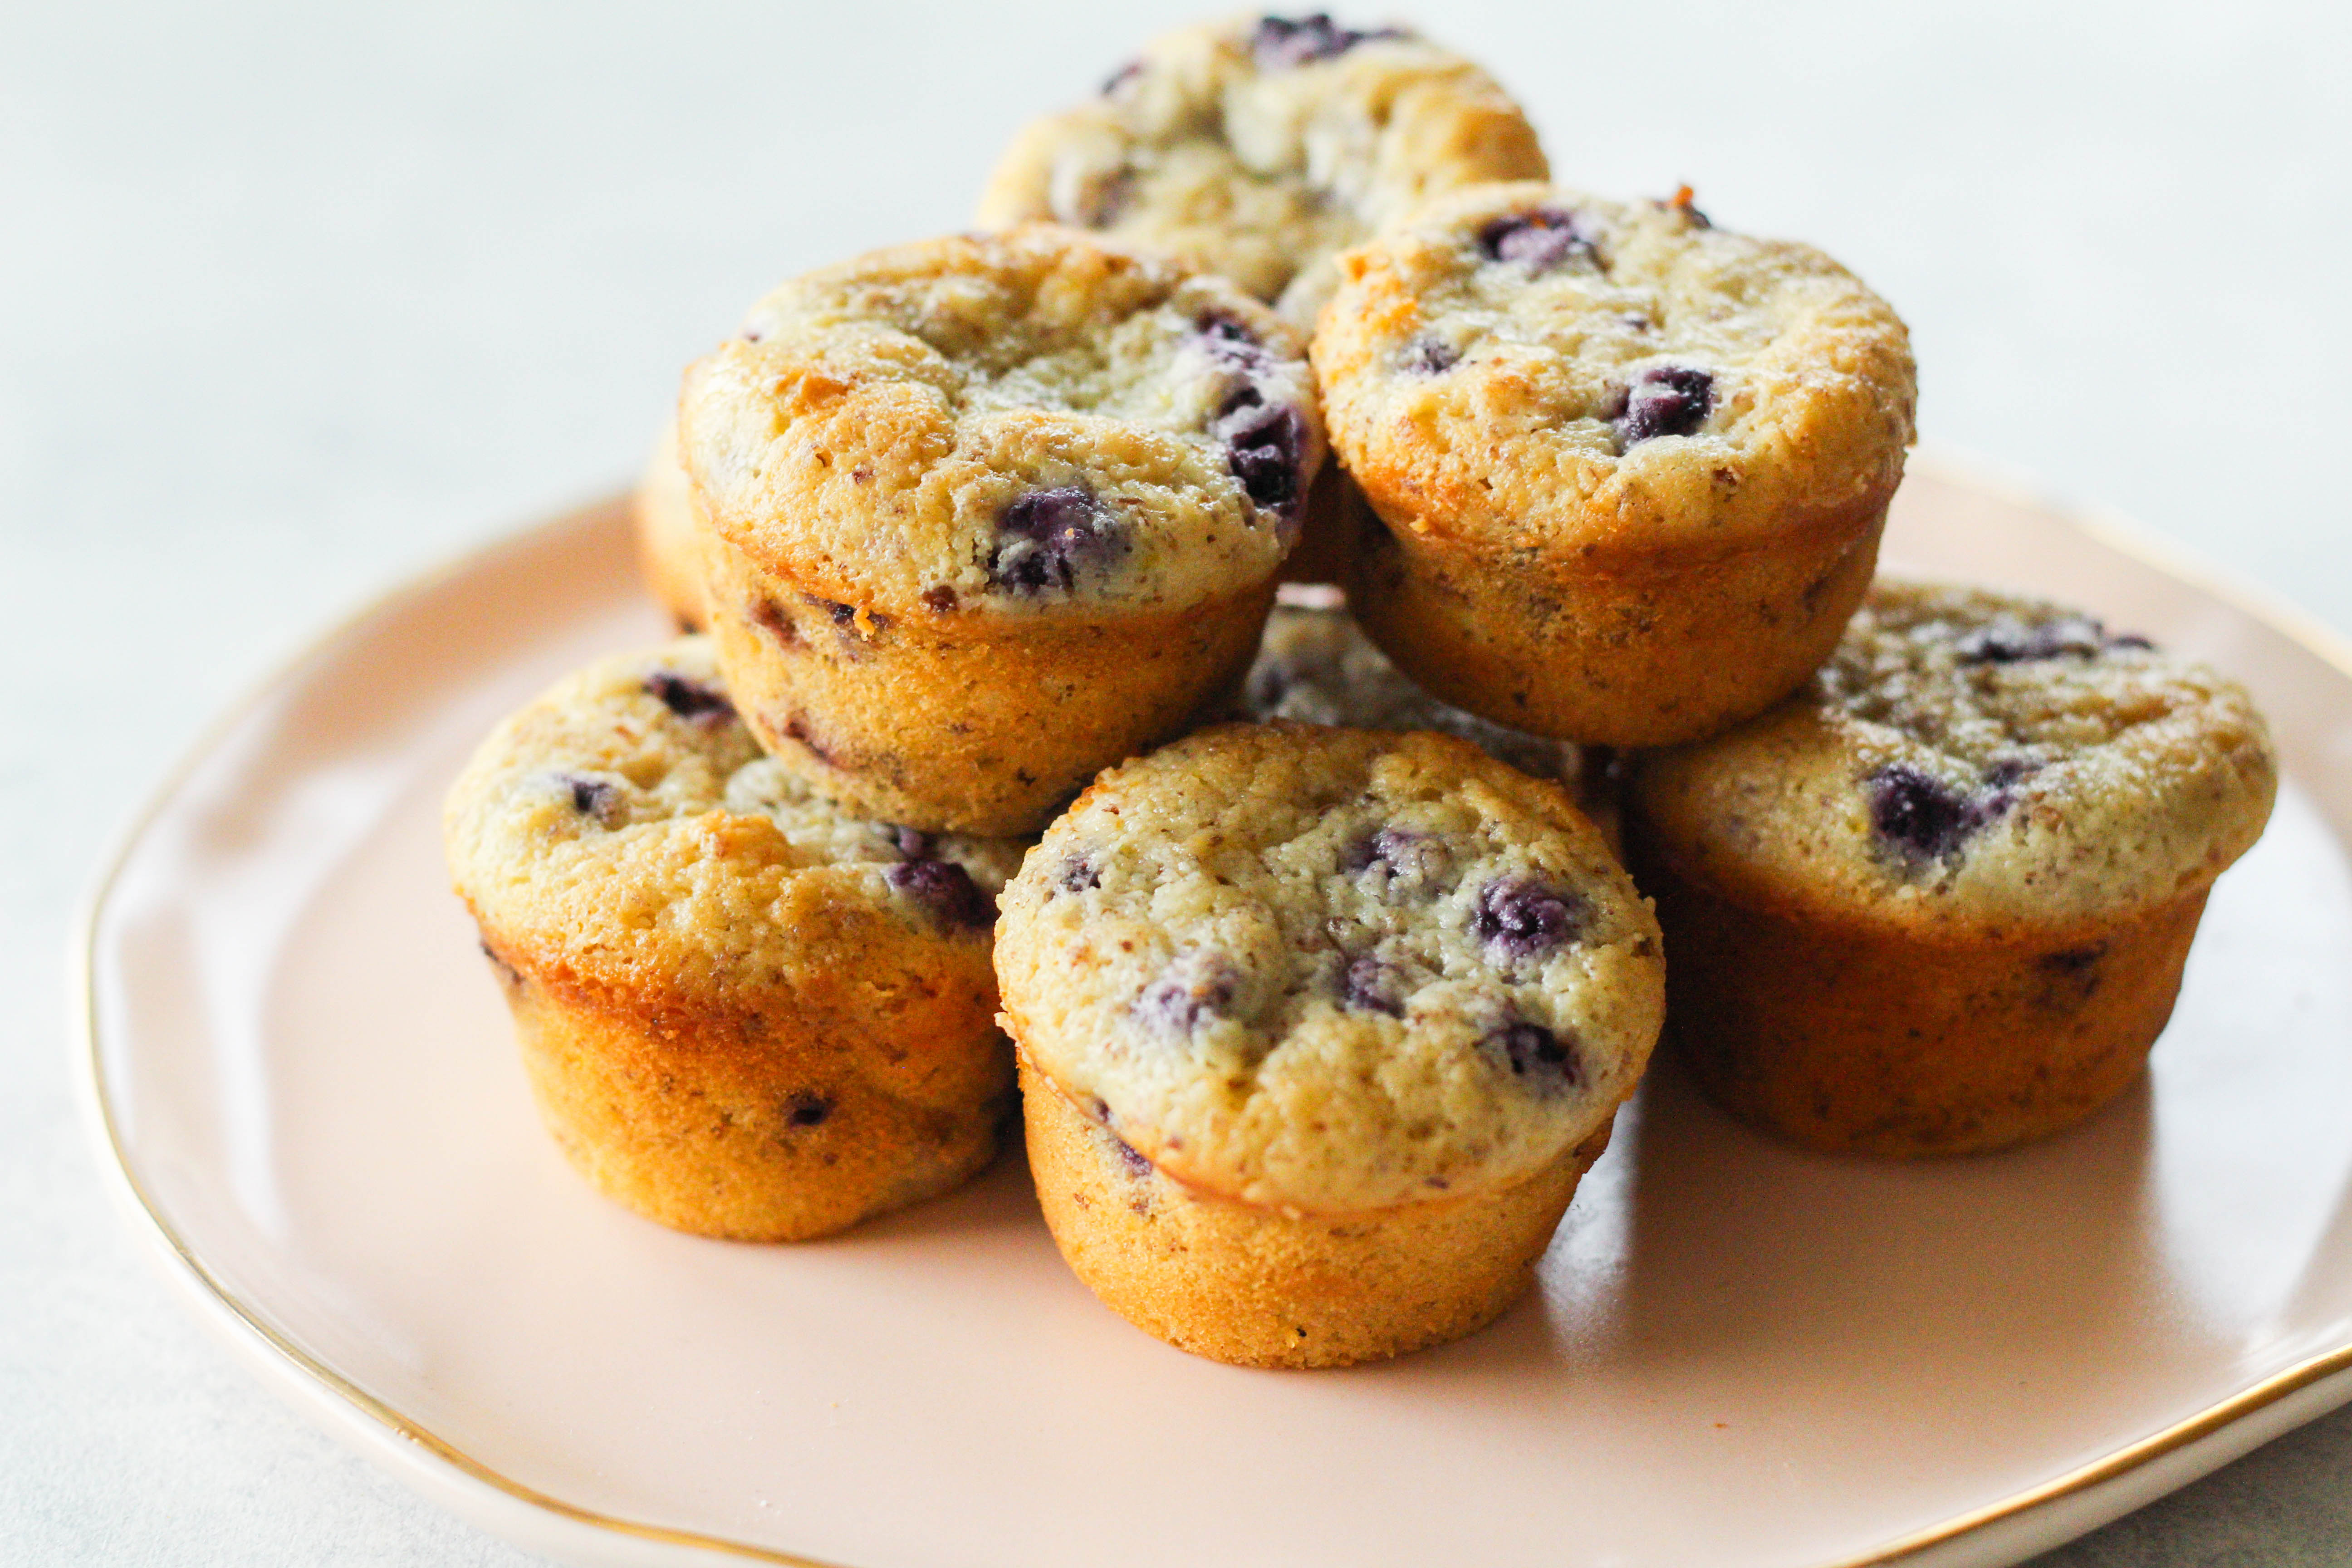 Super moist and soft, these mini blueberry muffins are a delicious treat! Enjoy them for breakfast, a snack or even dessert topped with vanilla ice cream.